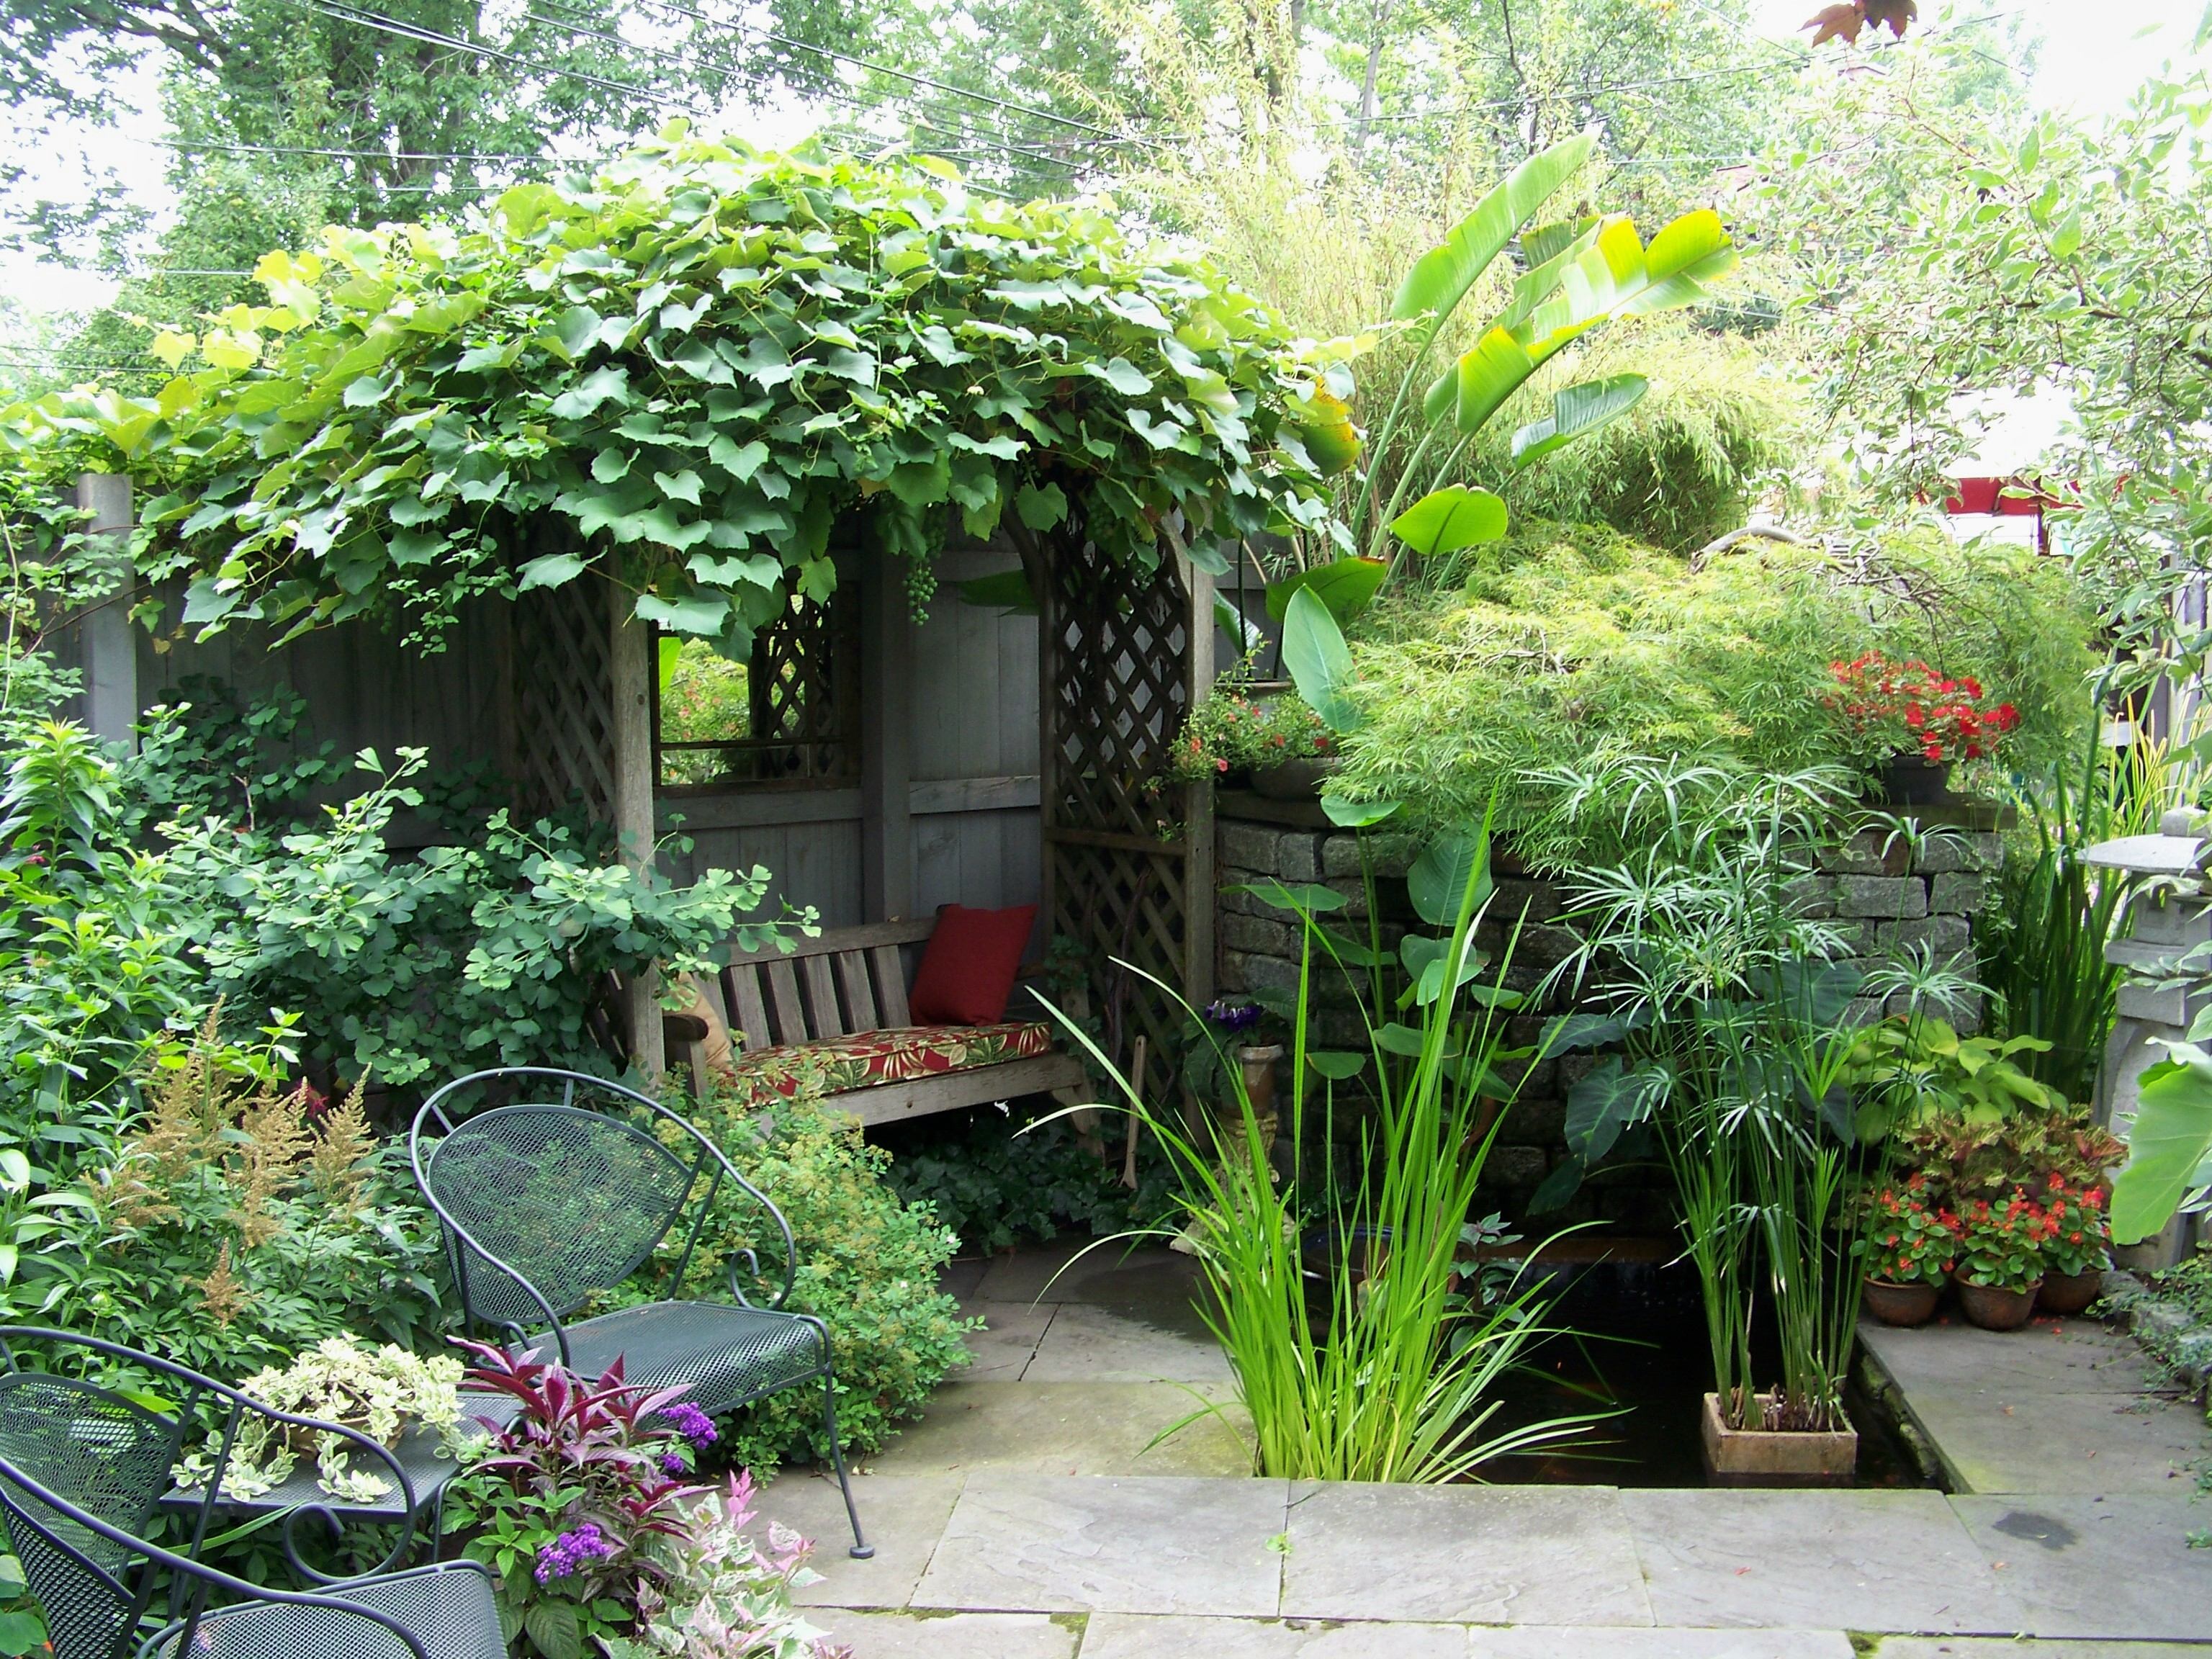 5 amazing small yard garden ideas nlc loans for Small garden ideas